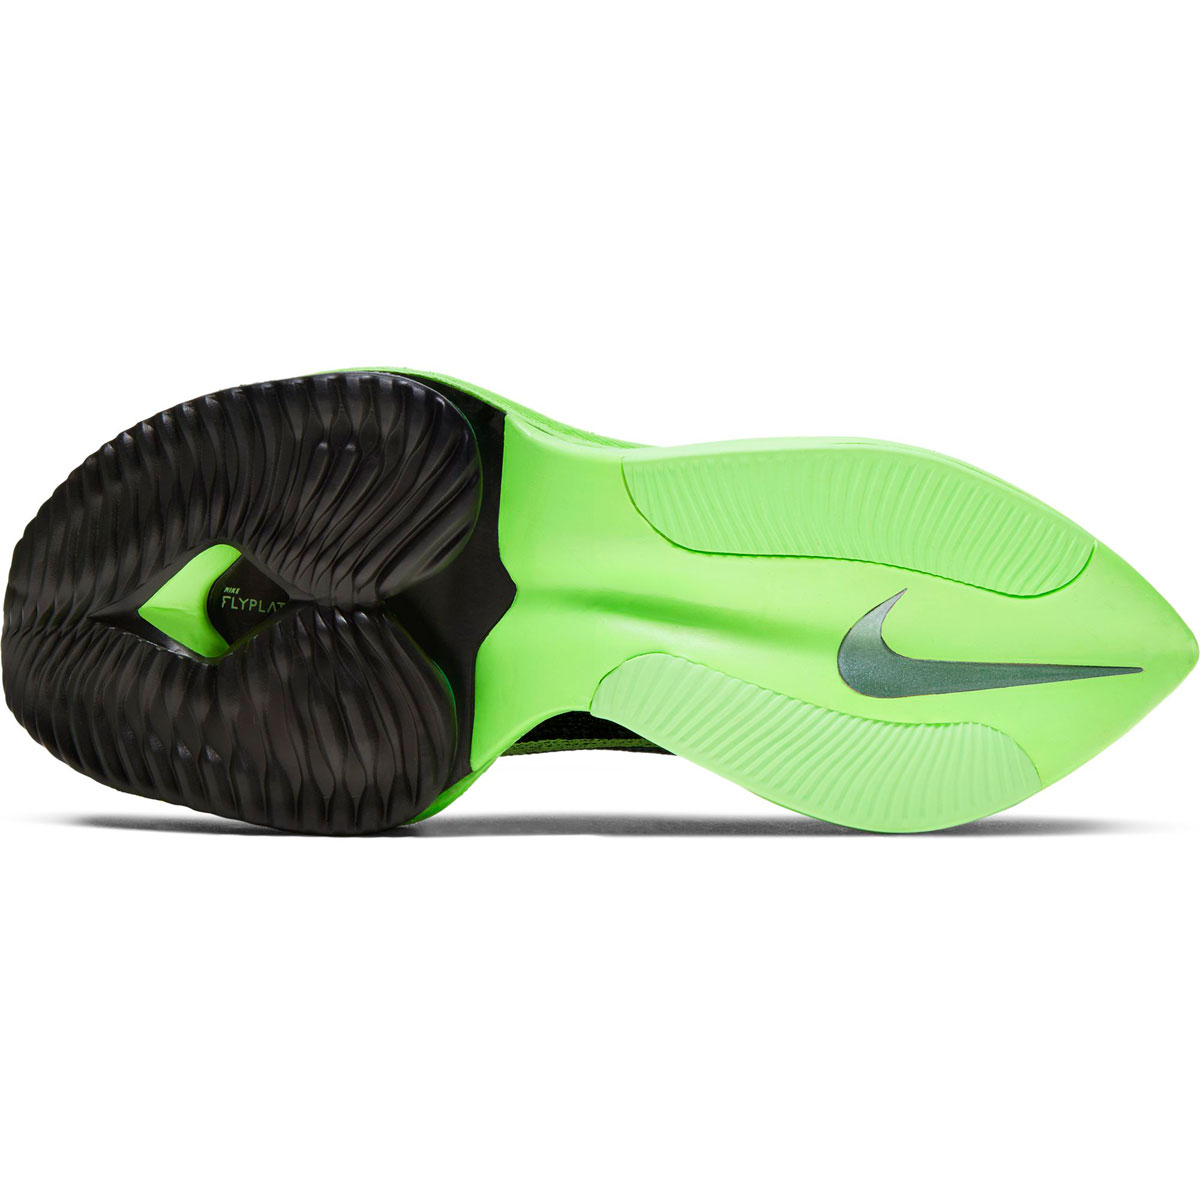 Women's Nike Air Zoom Alphafly Next% Running Shoe - Color: Black/Lime Blast - Size: 5 - Width: Regular, Black/Lime Blast, large, image 3